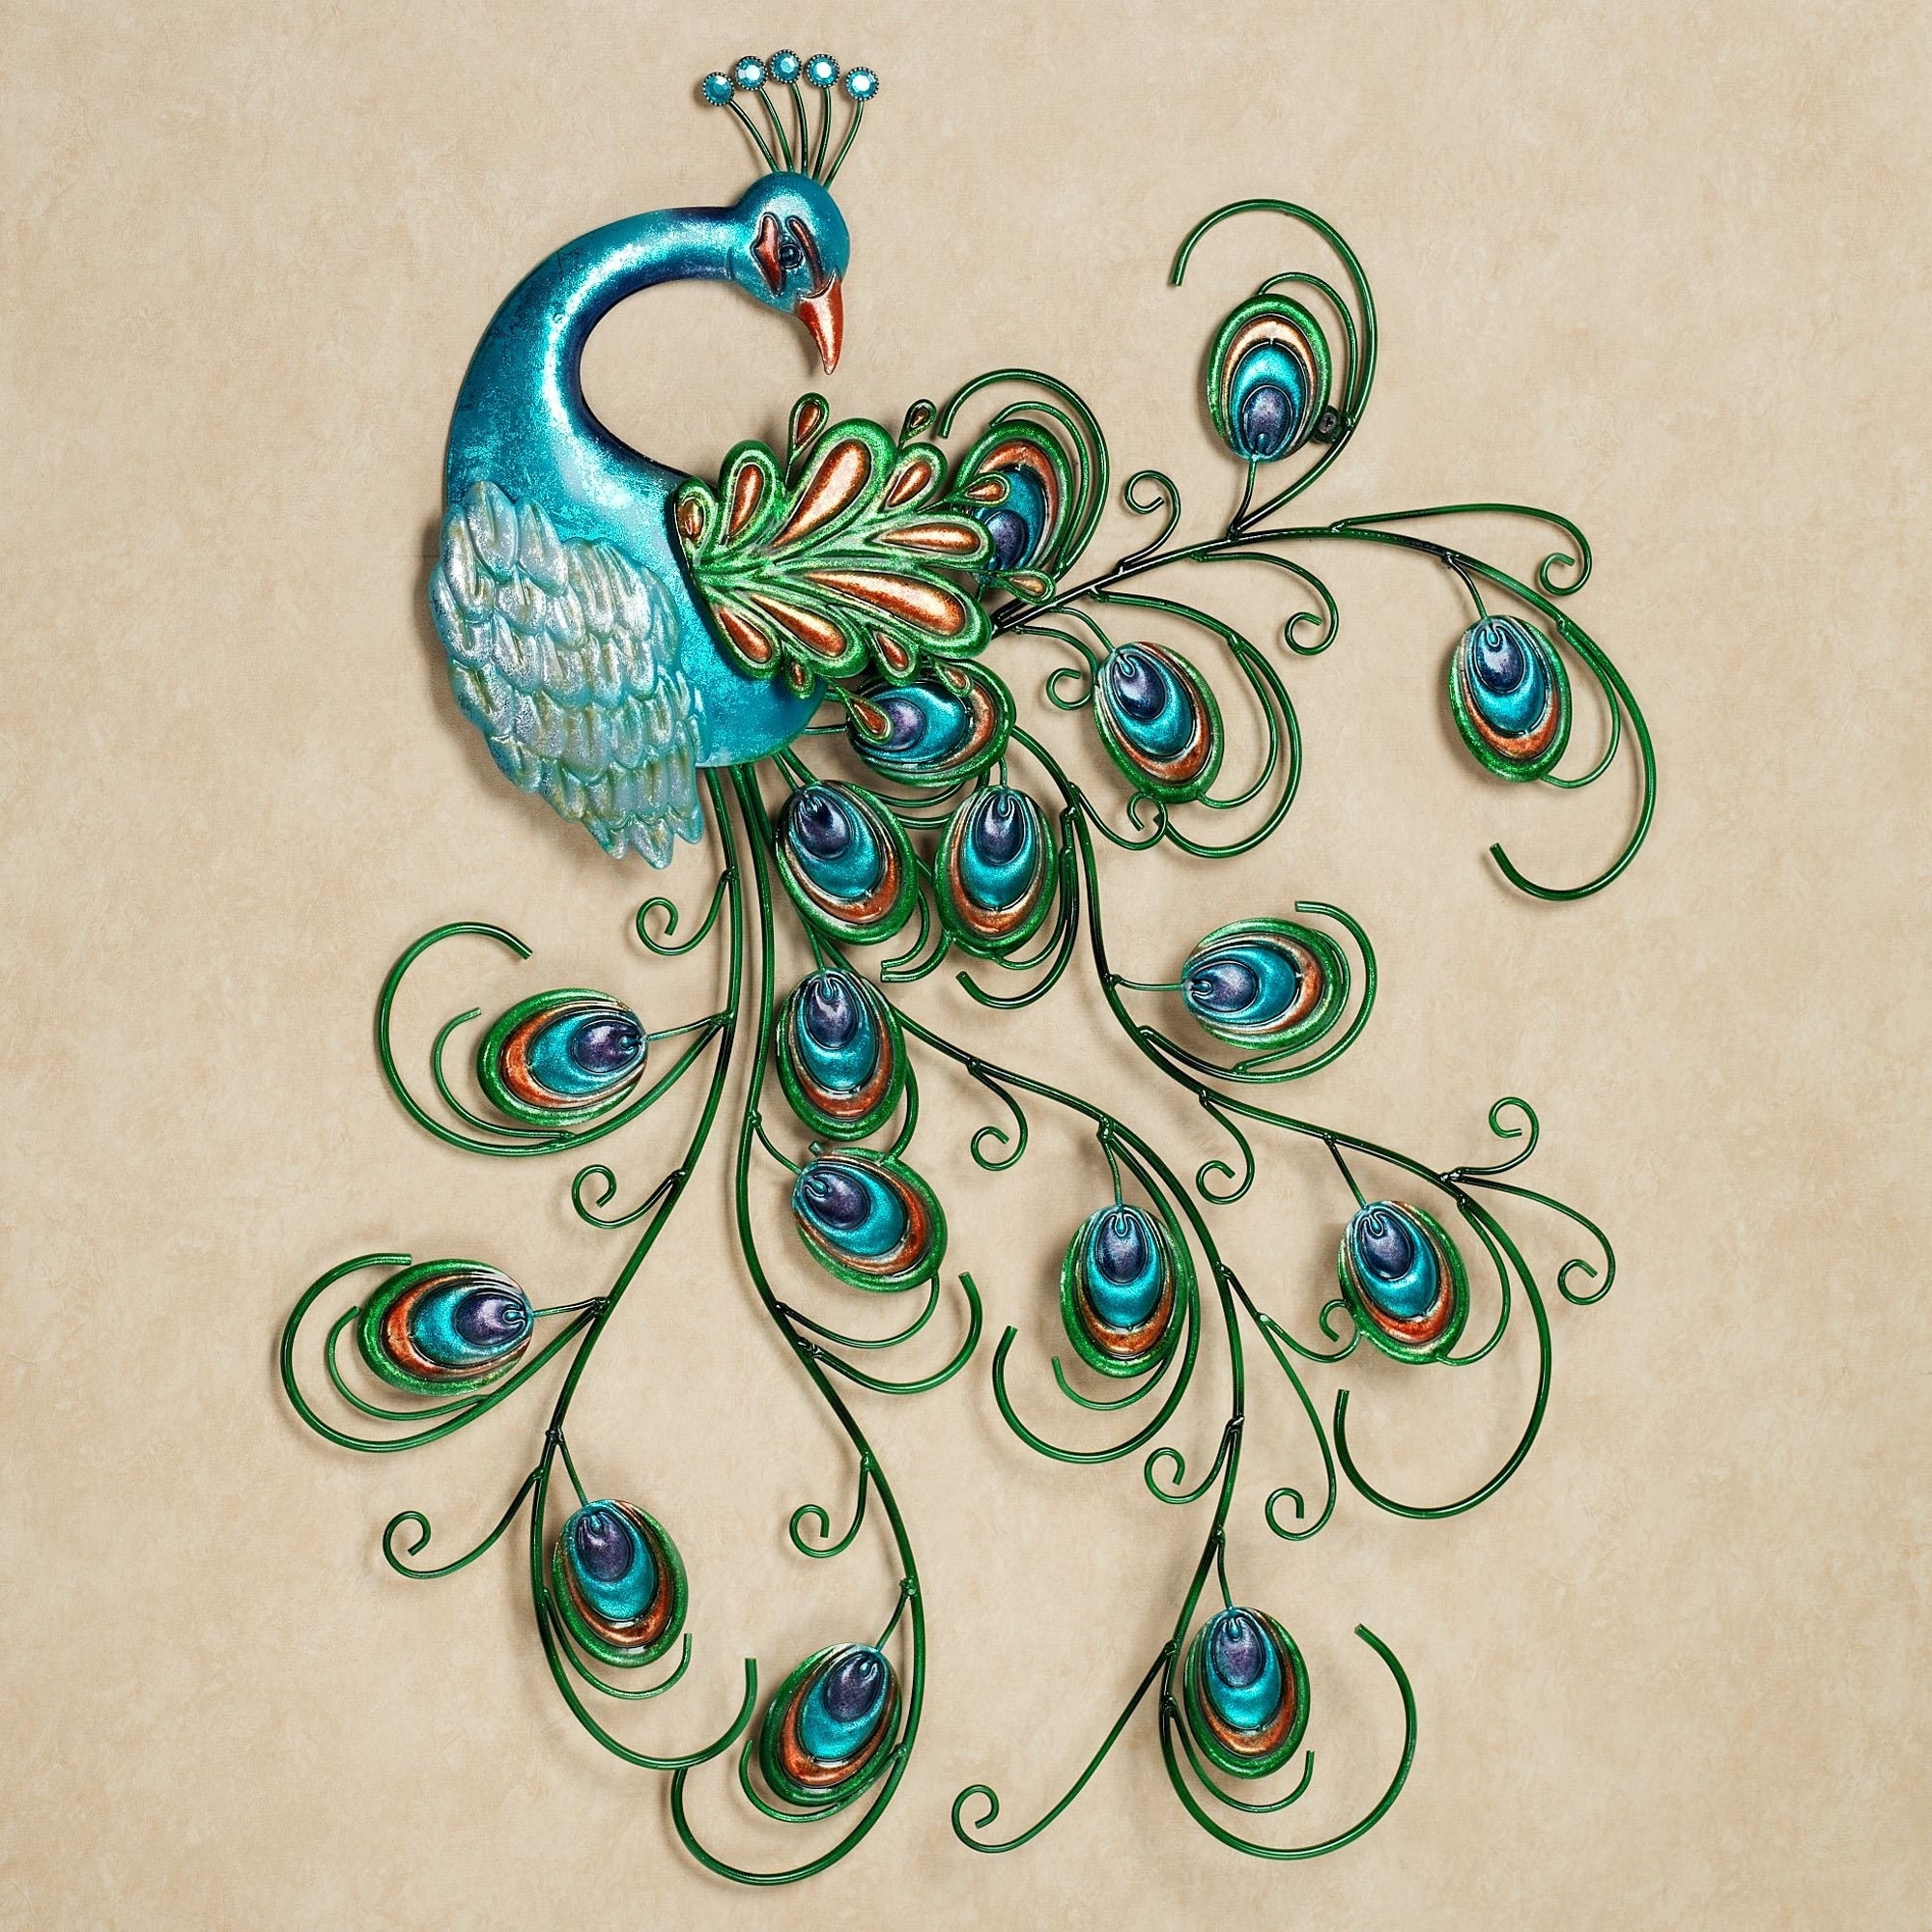 Lovely Peacock Wall Art Design Of Metal Peacock Wall Decor Of Metal Regarding Most Popular Peacock Wall Art (Gallery 3 of 15)